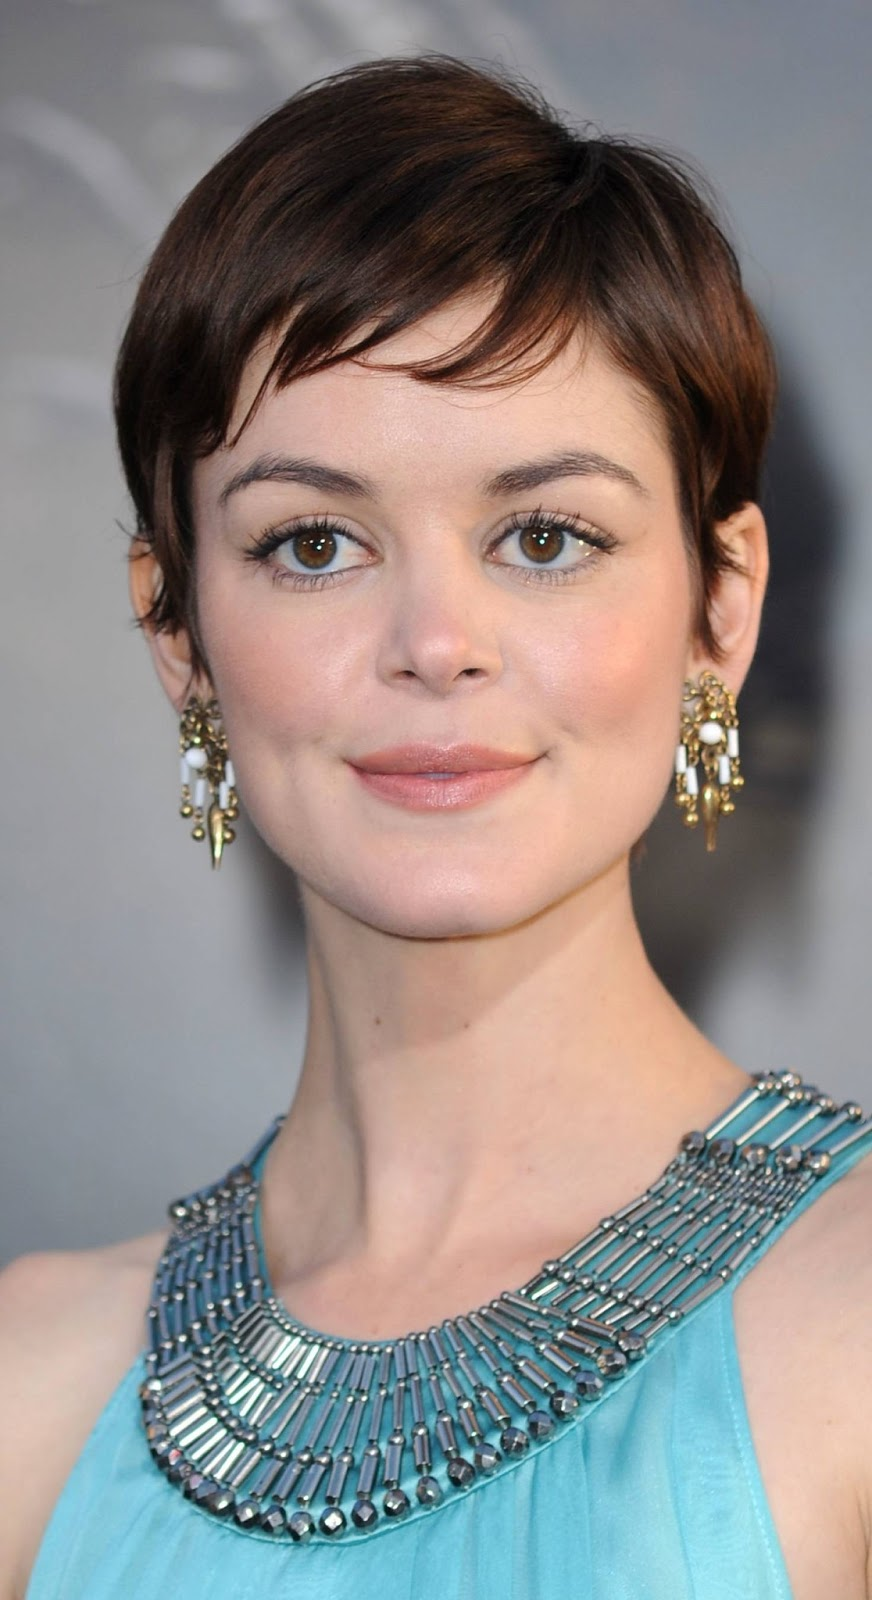 Cool Short Pixie Haircuts For Teens